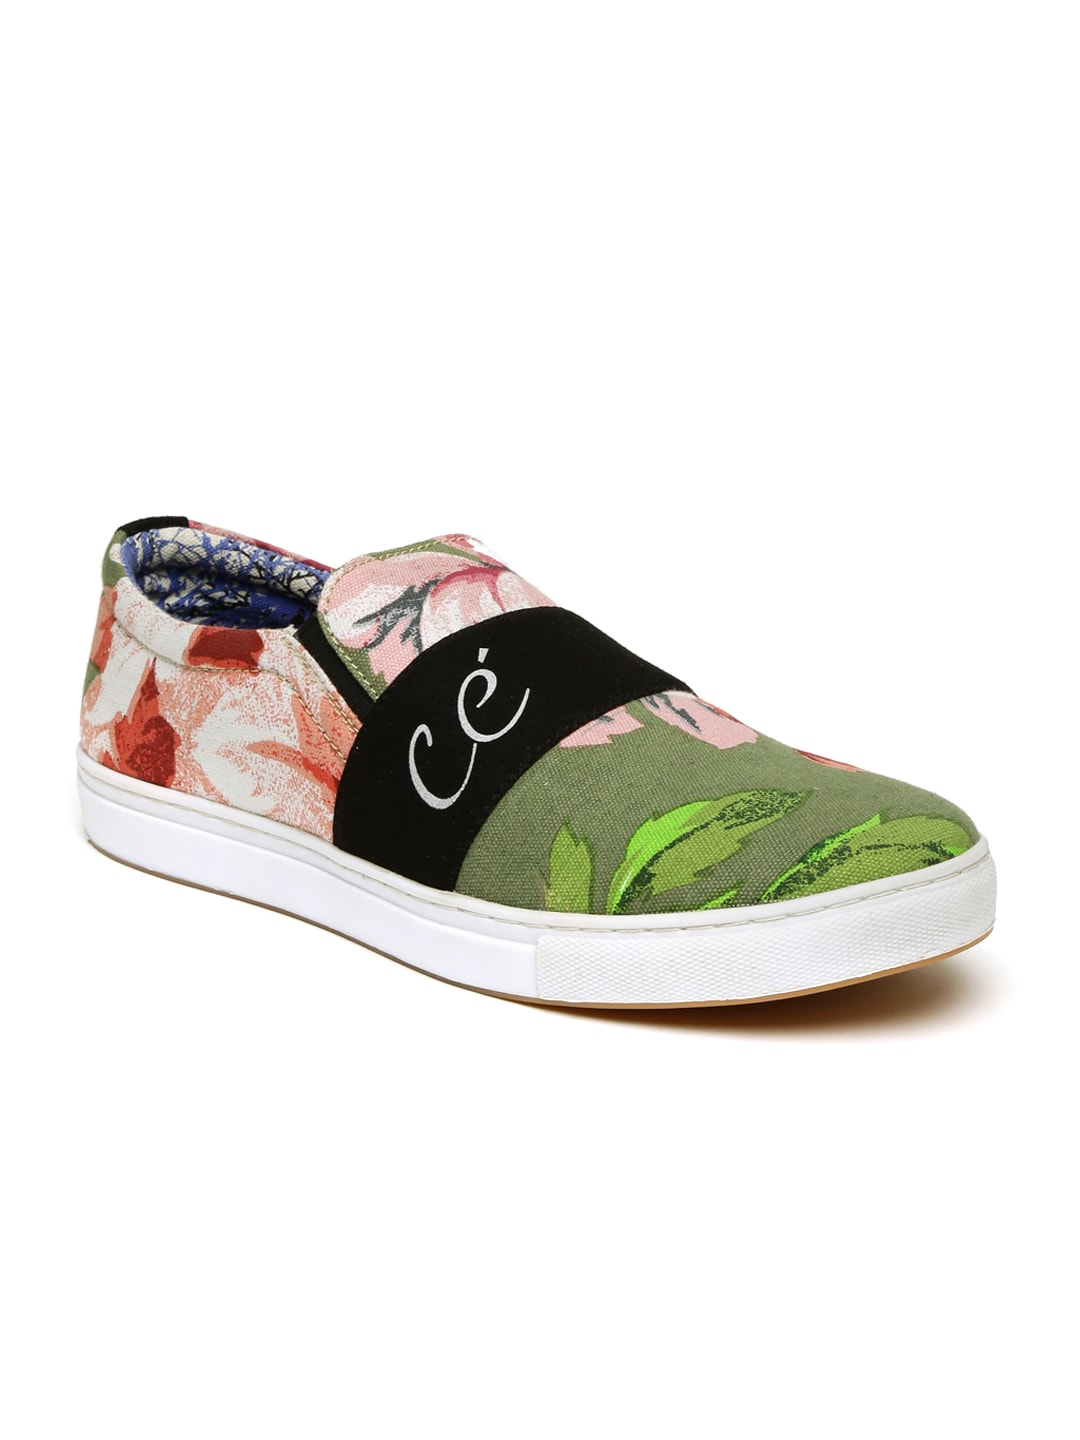 Core Men Multicoloured Floral Print Slip-Ons image